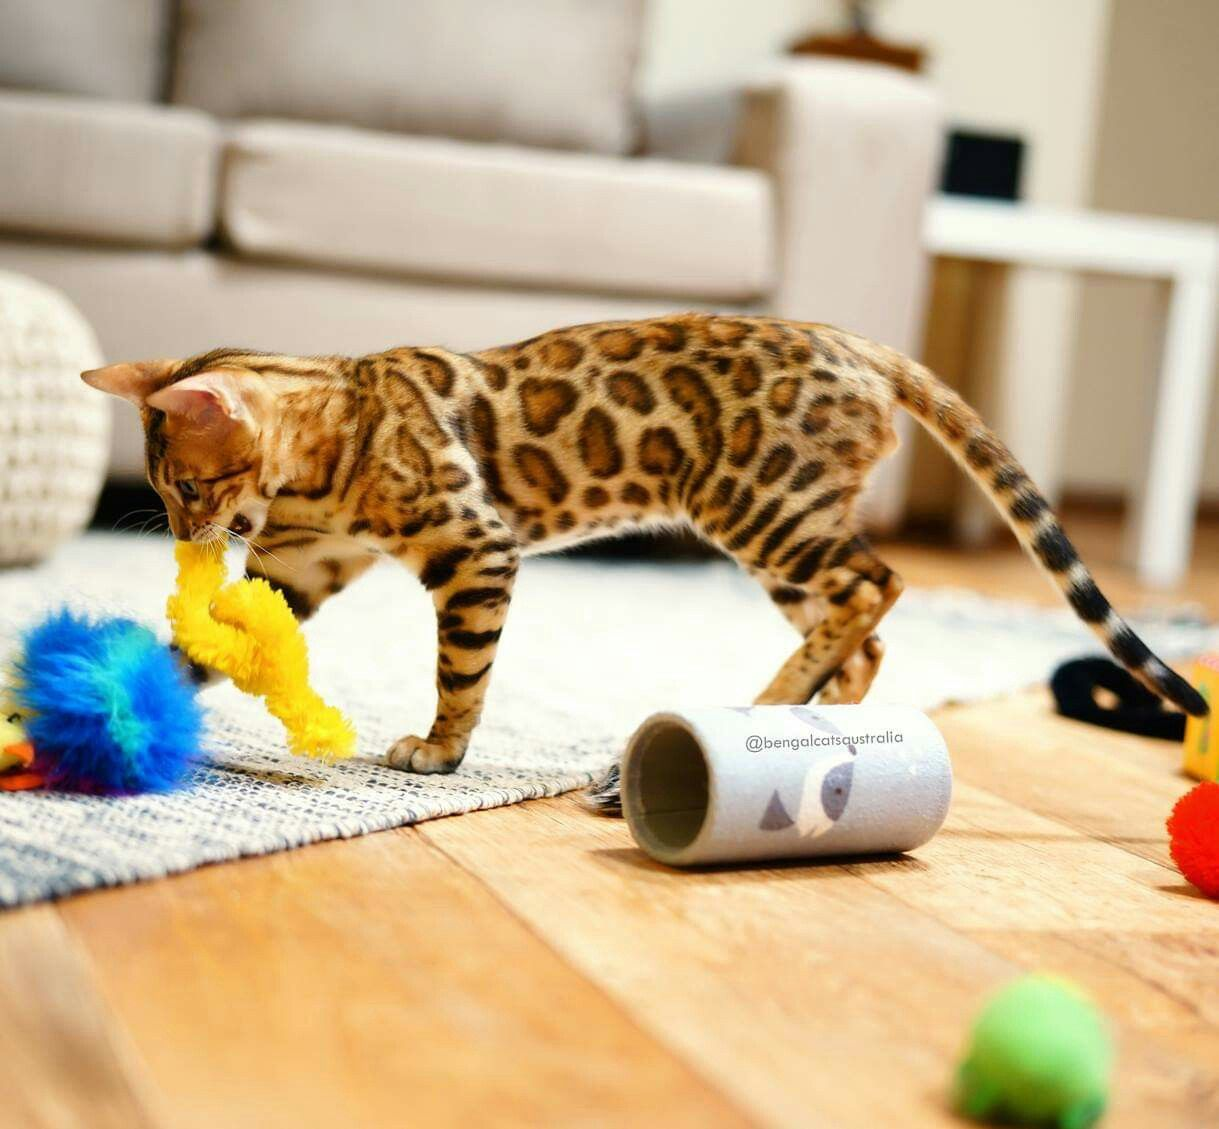 Bengal Cats Australia Breeding Bengal Cats Since 2009 We Hope You Enjoy The Beauty Of Our Special Cats As Much Bengal Kitten Bengal Cat Bengal Cat Breeders